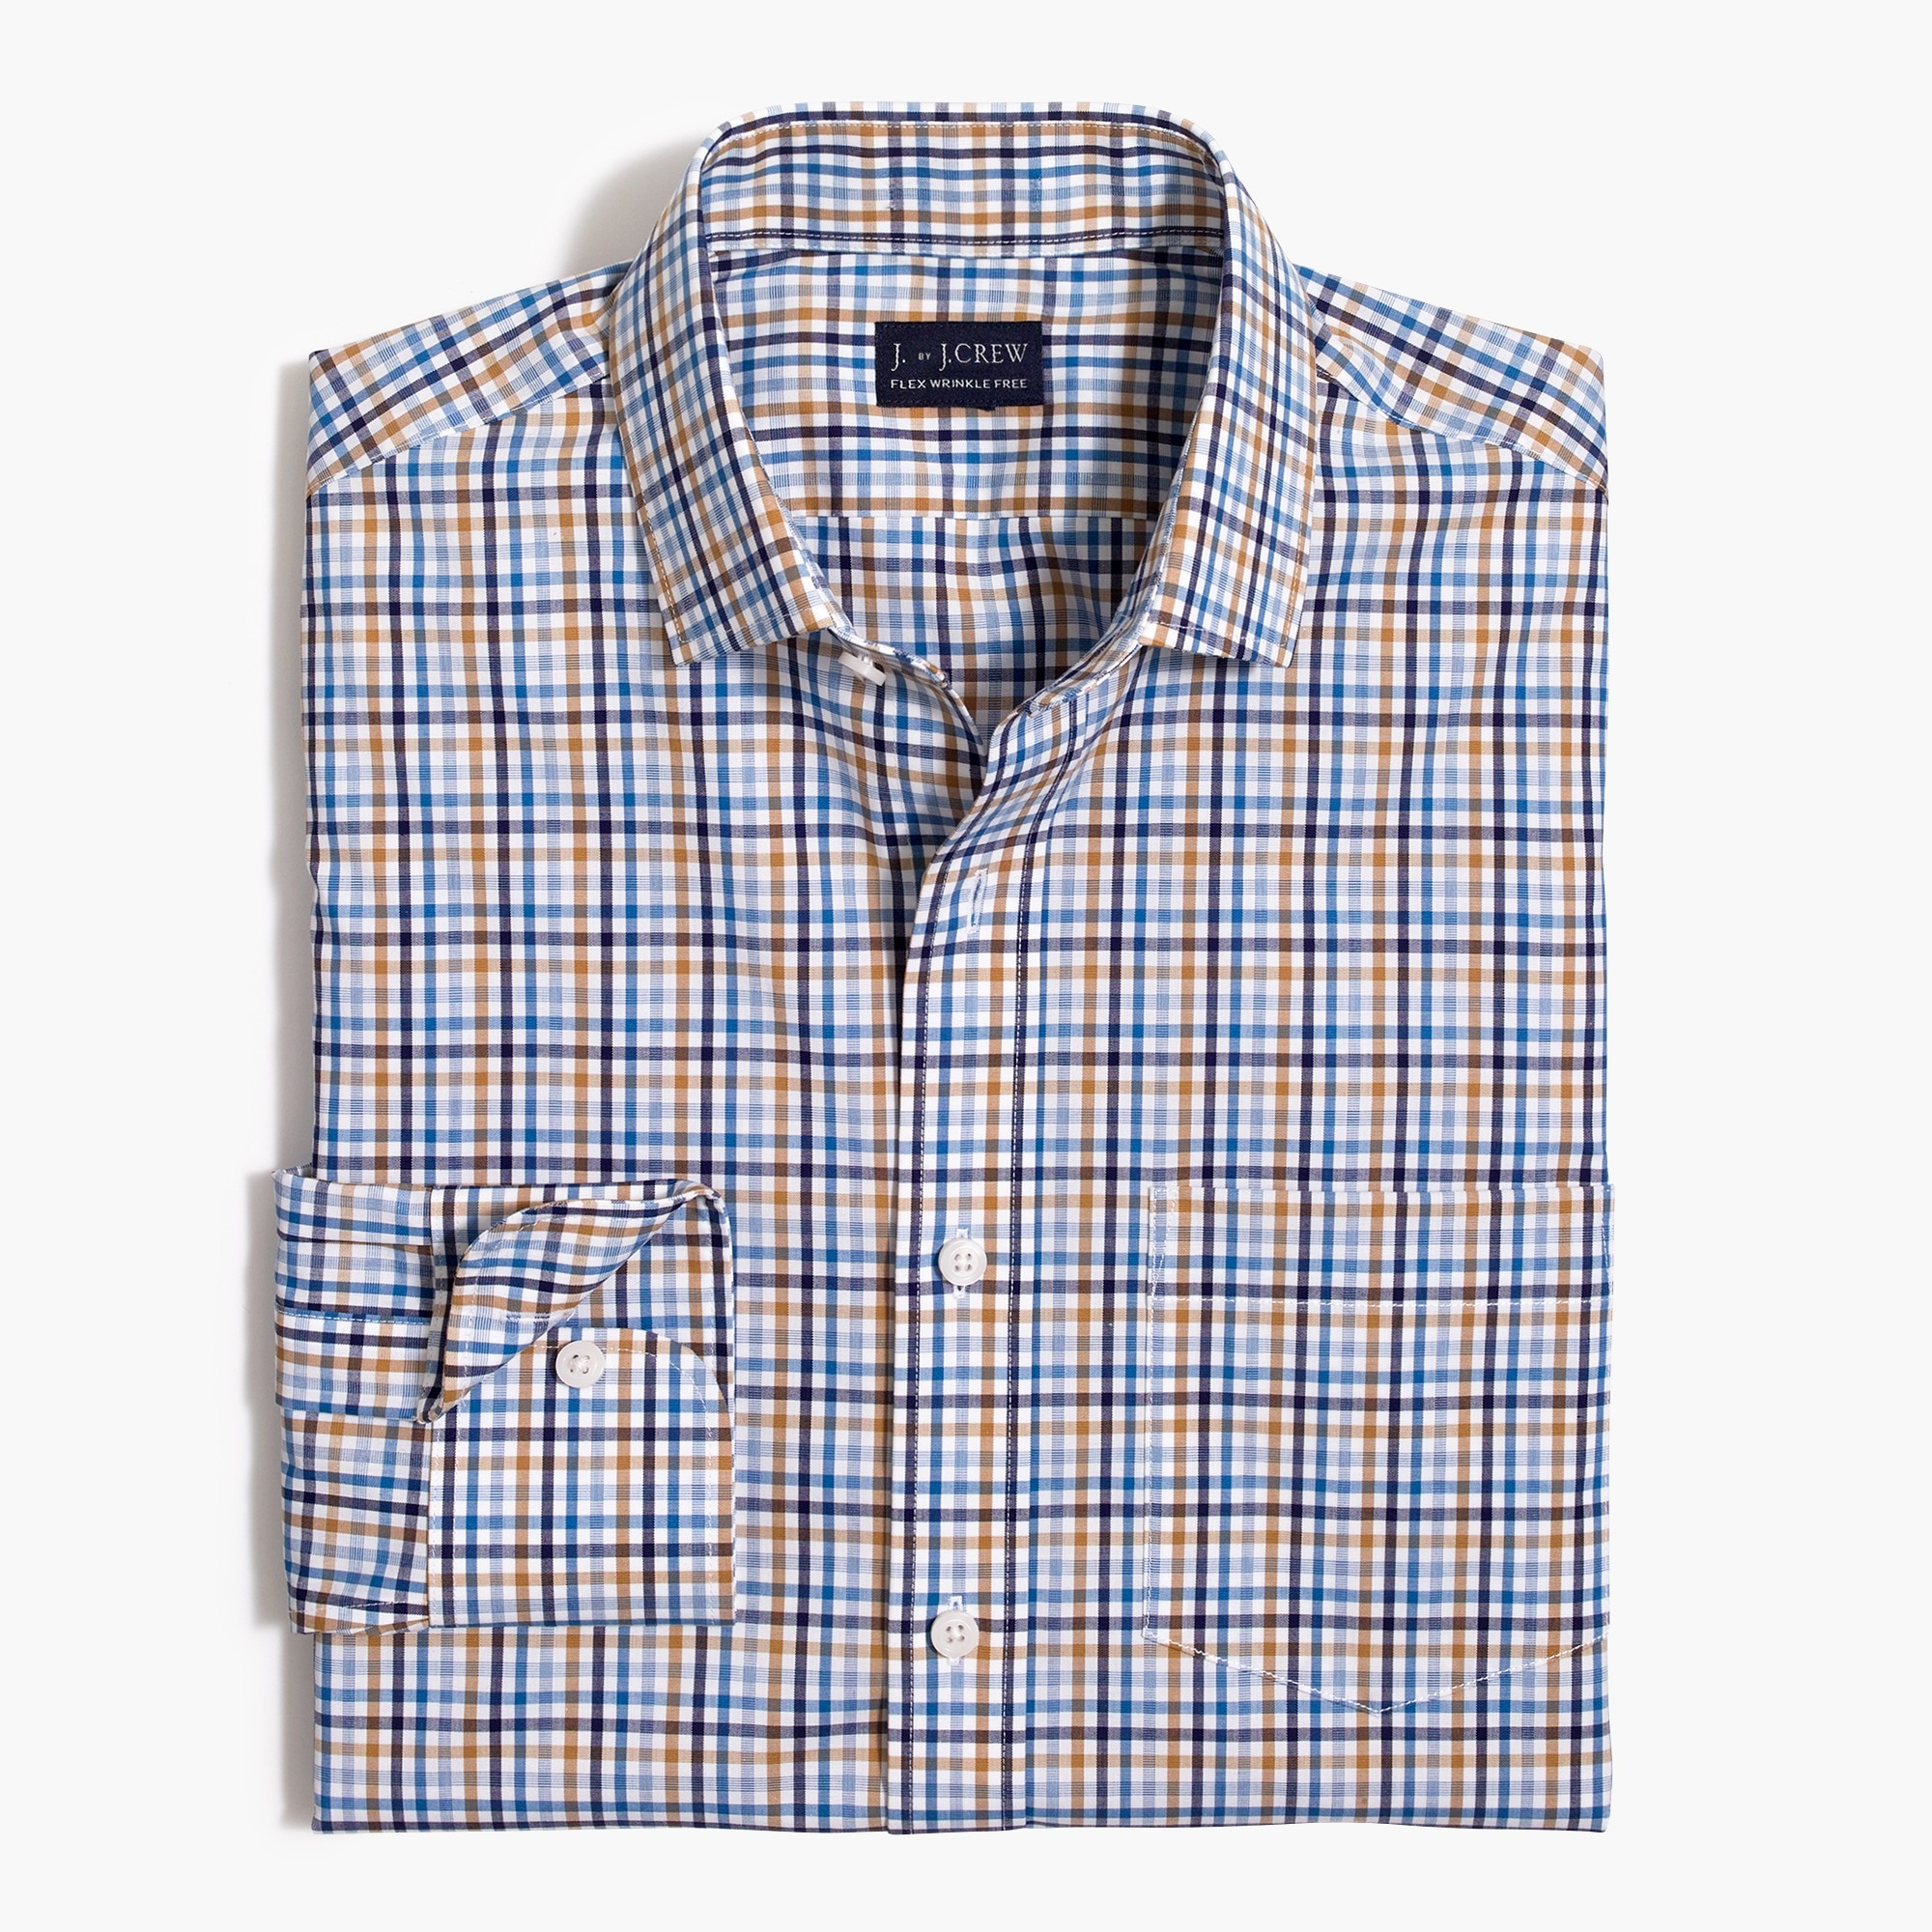 Image 1 for Slim Thompson flex wrinkle-free dress shirt